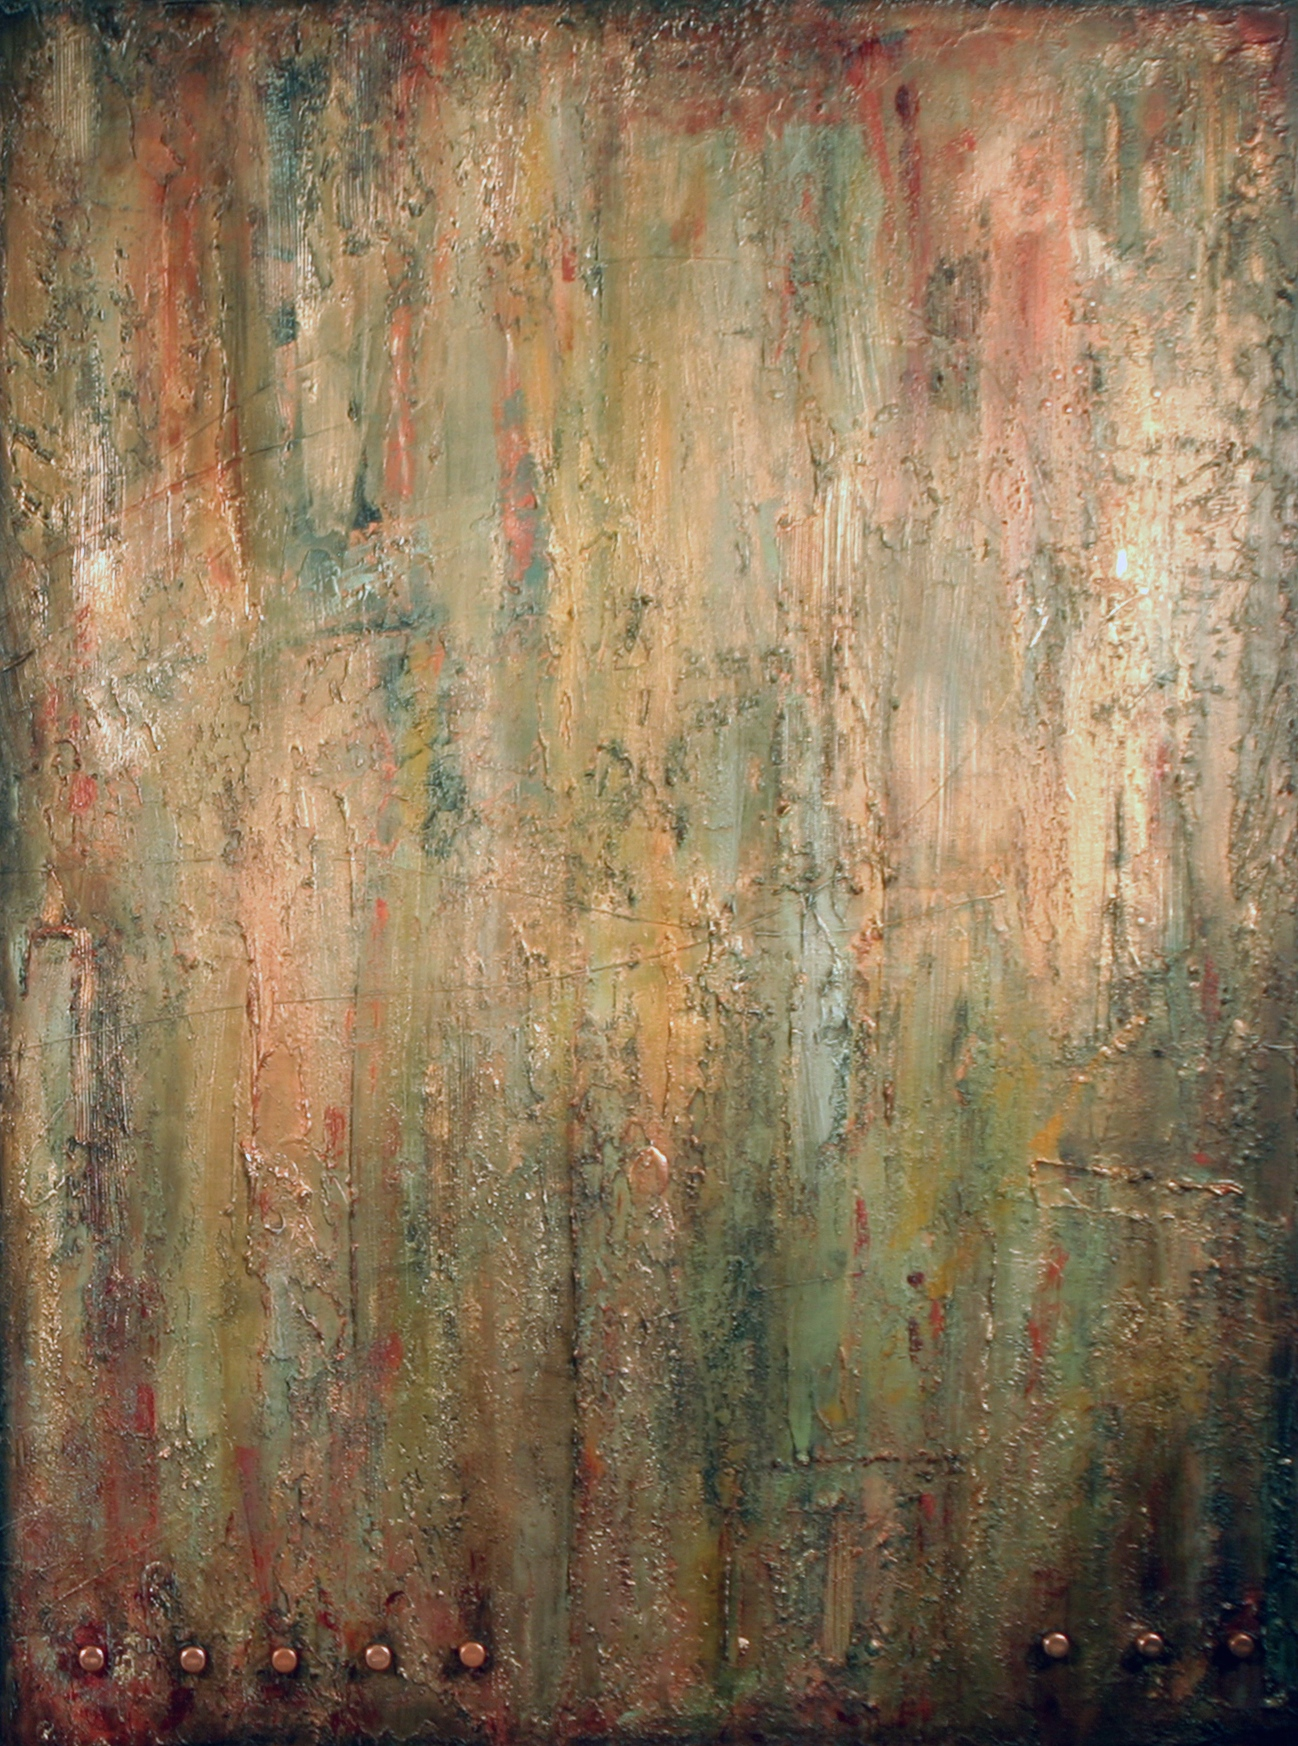 liberated spirits  48 x 36 x 1.5 inches  mixed media + copper on canvas  $3,240